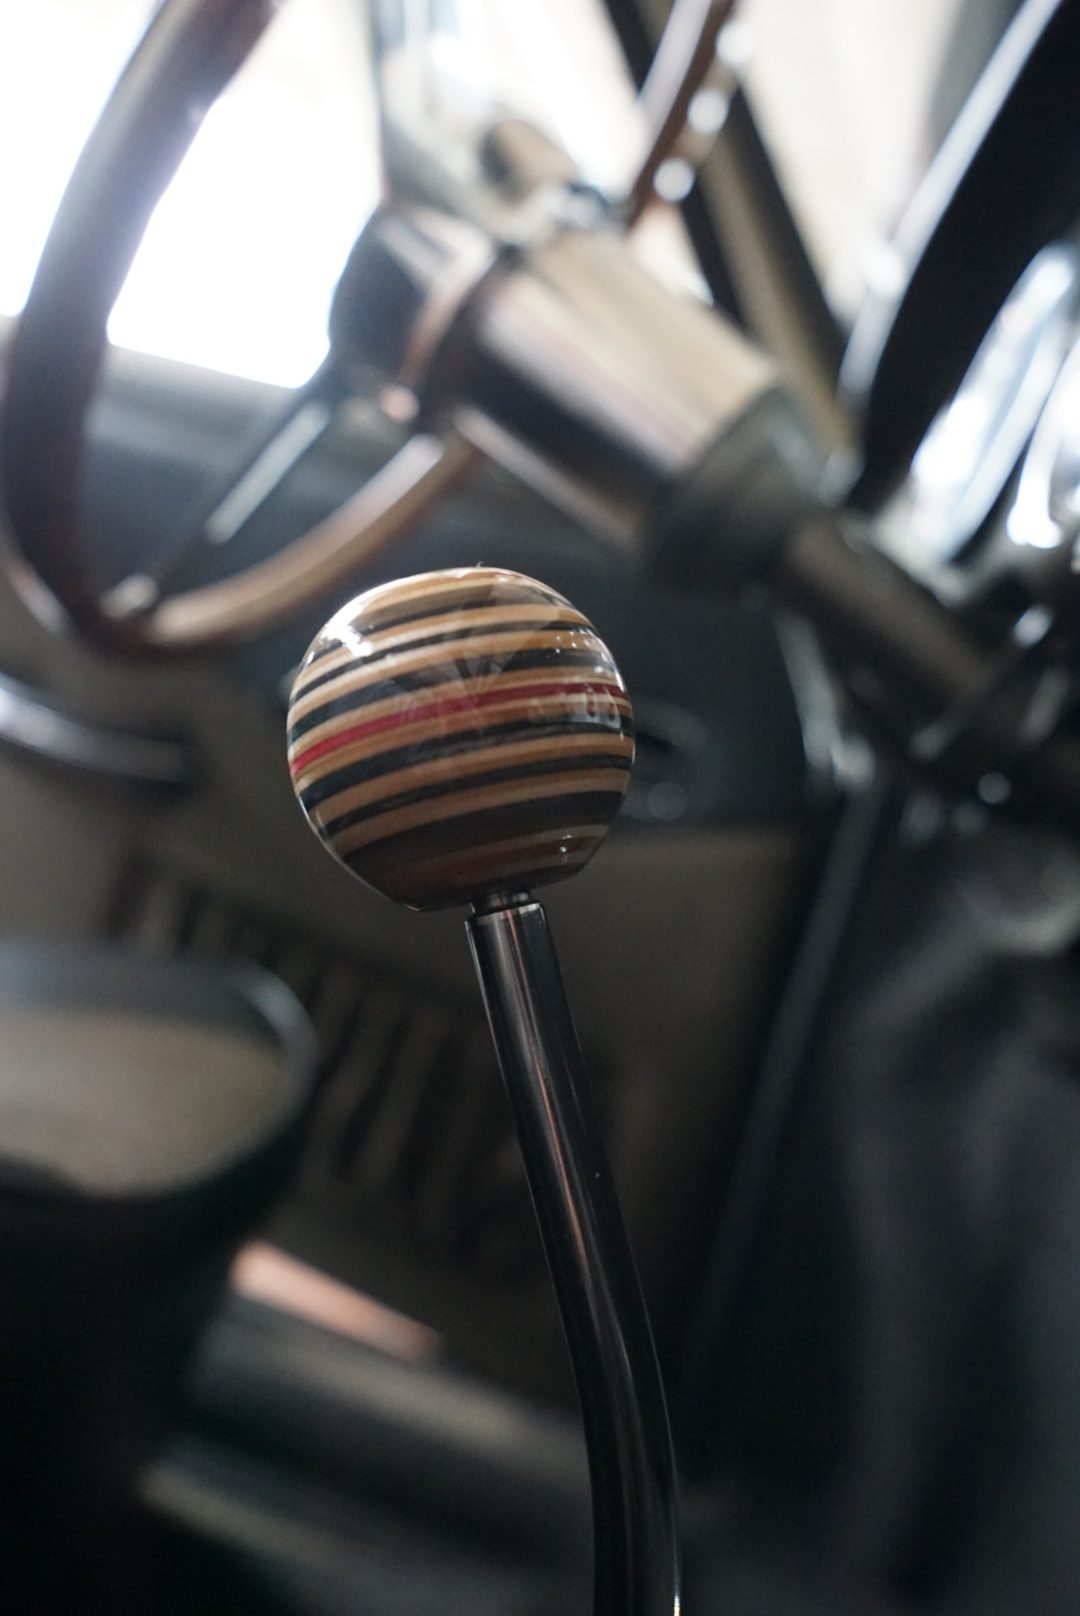 karmann ghia shift knob